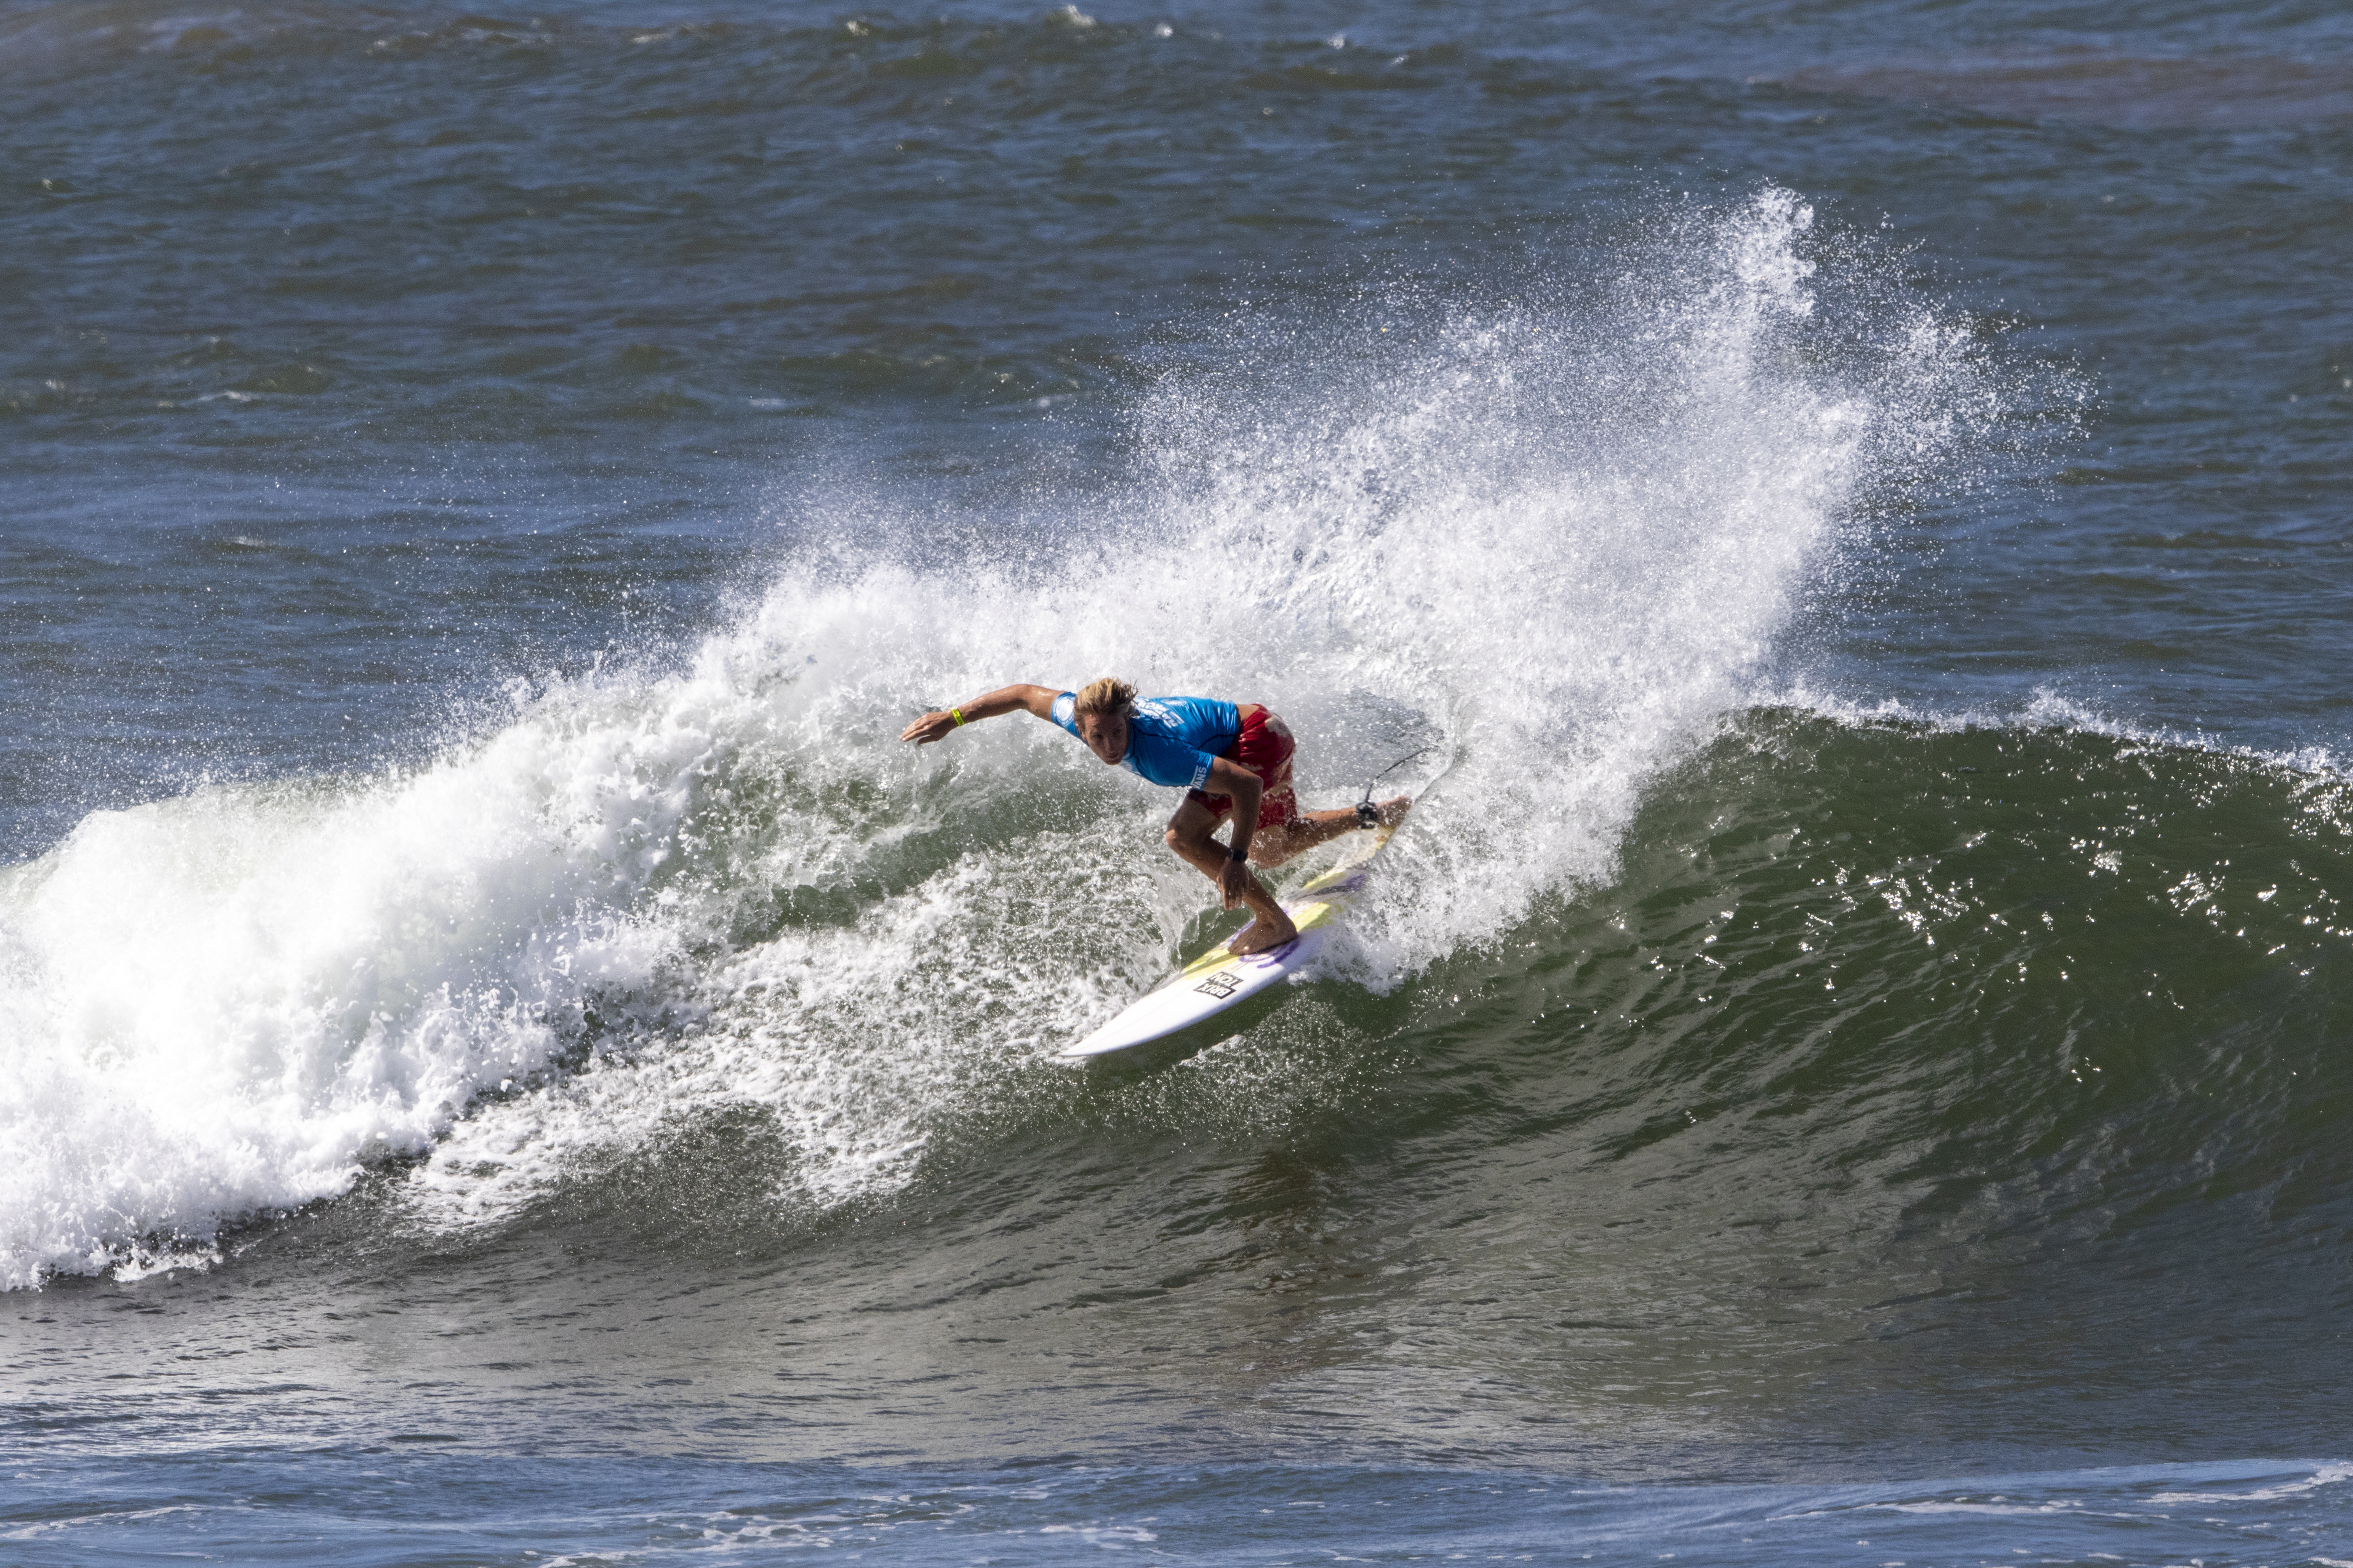 5fa230bae2 Skip McCullough of the USA advances in second from round 1 heat 12 of the  WSL Hawaiian Pro held at Haleʻiwa Aliʻi Beach. PC  World Surf League.